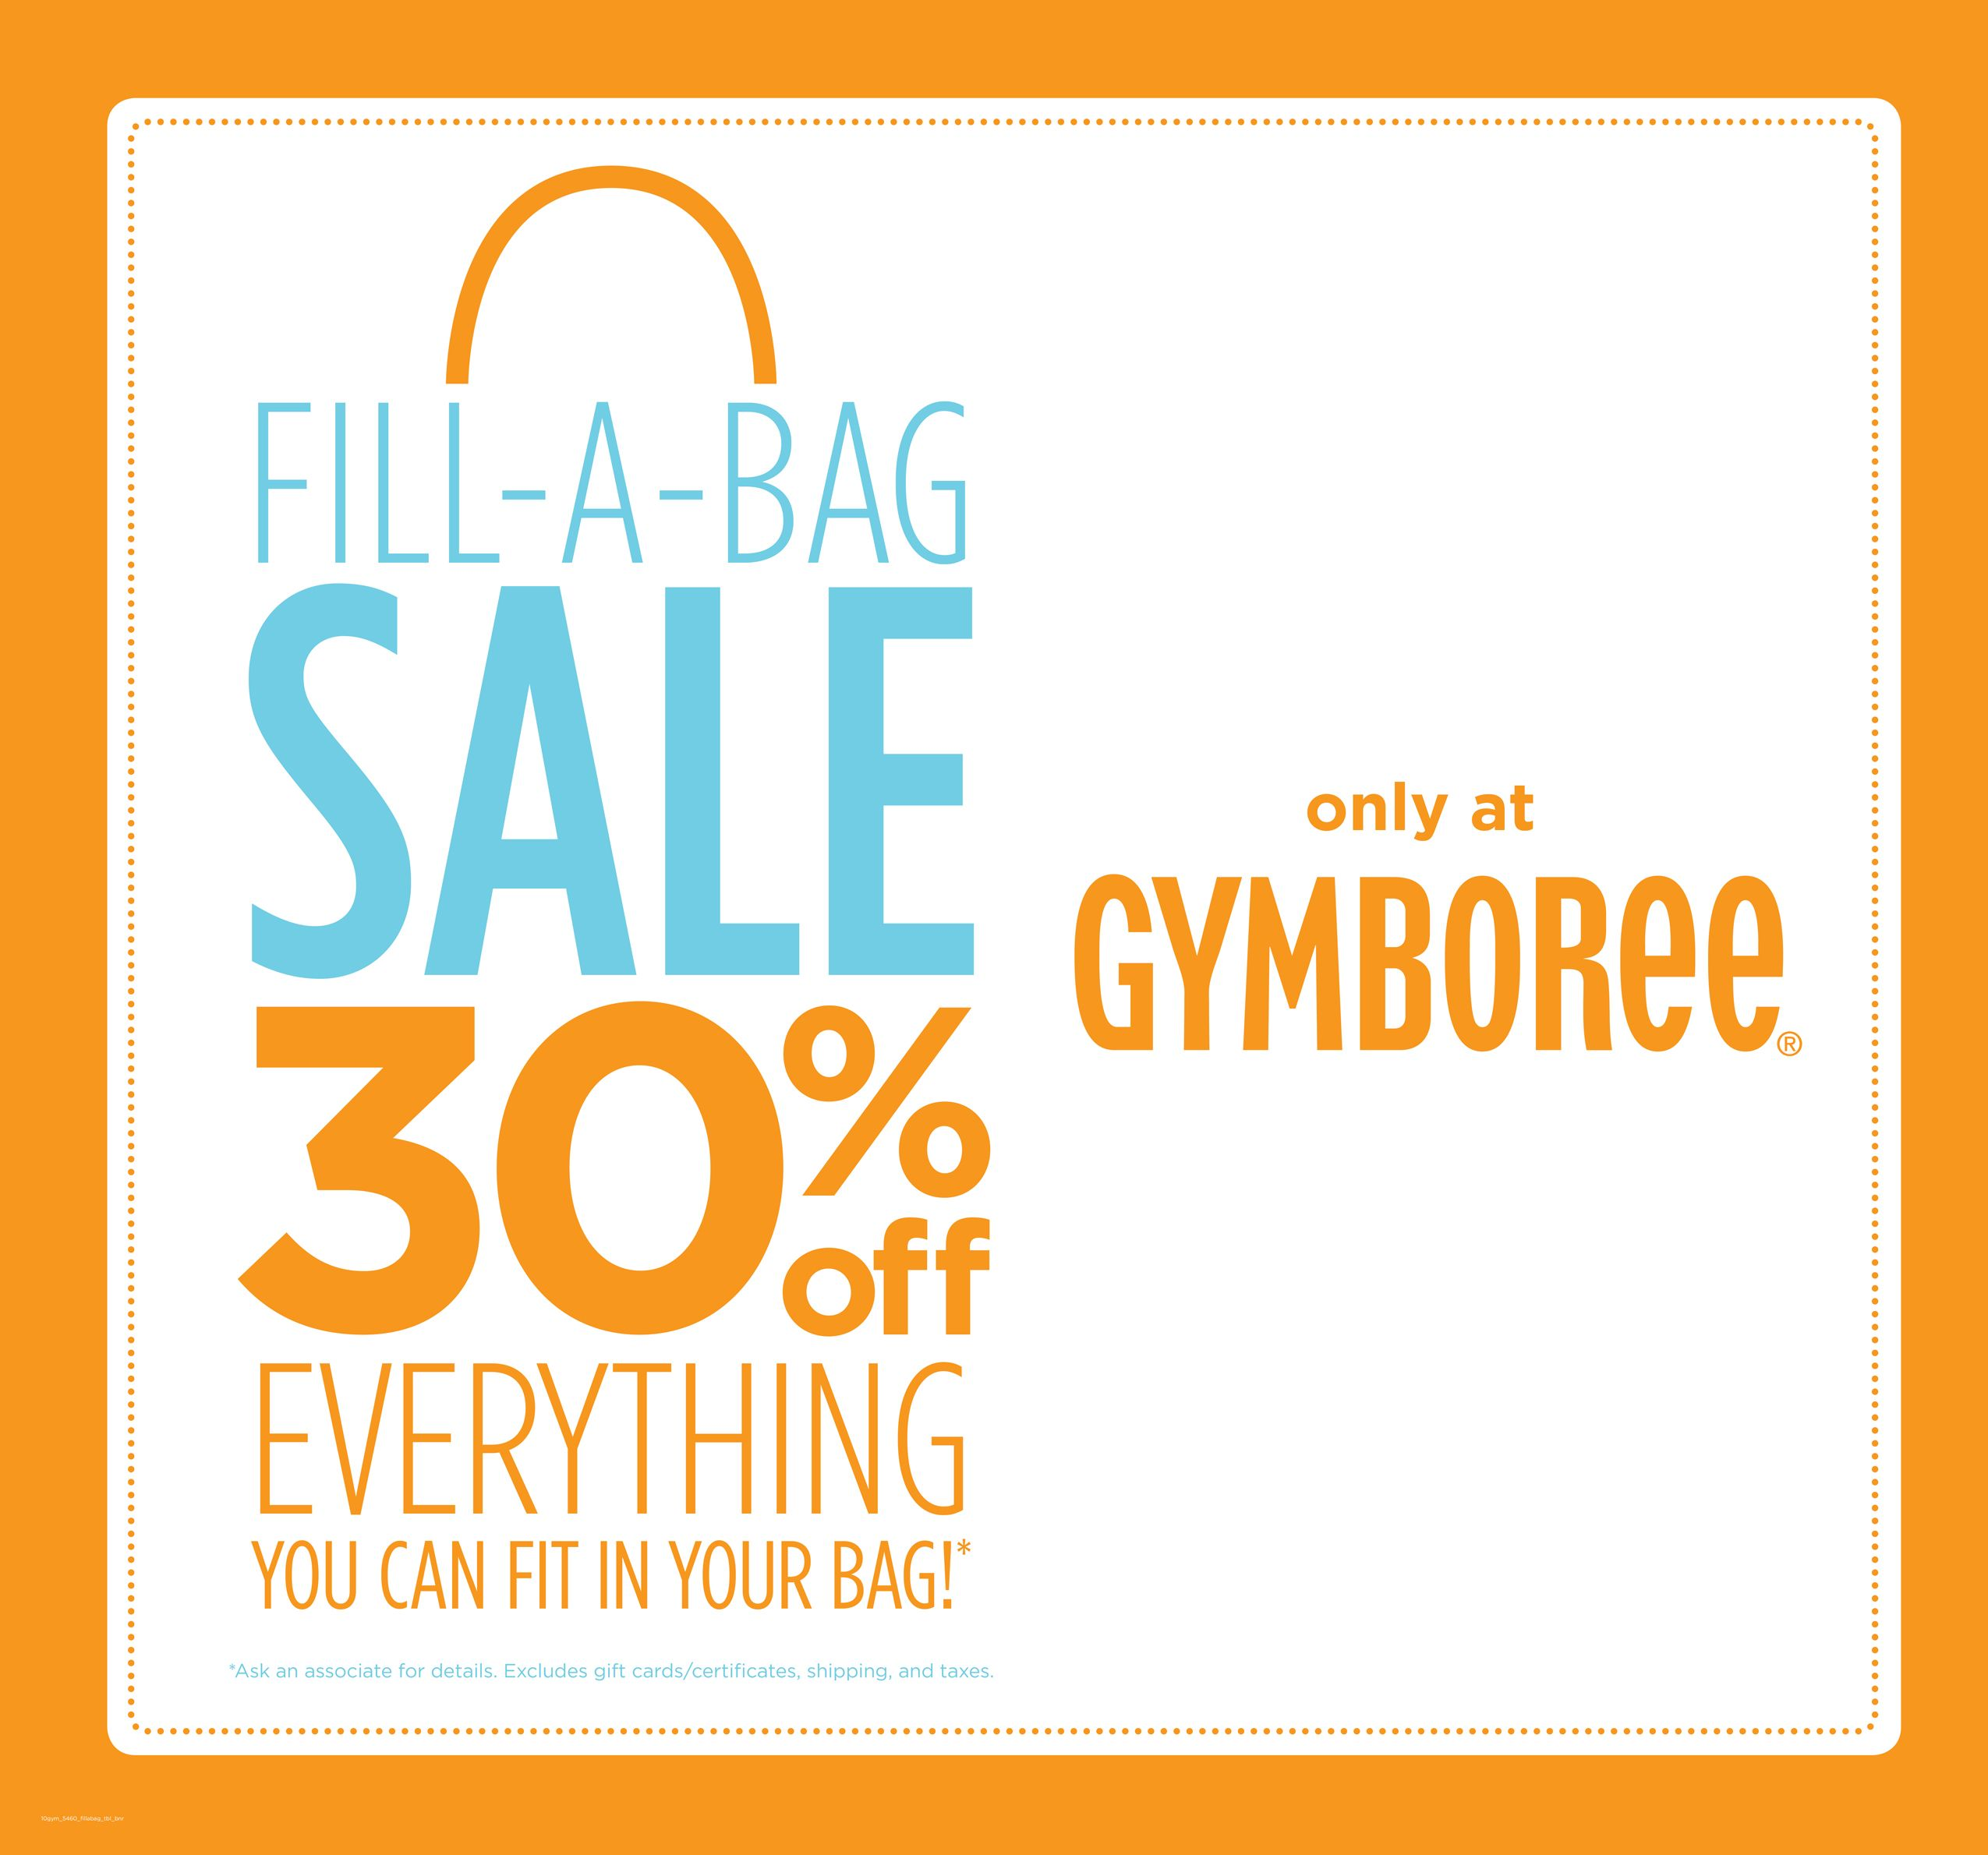 image regarding Gymboree Printable Coupons referred to as Gymboree Printable Coupon 2016 The Gymboree Business is a